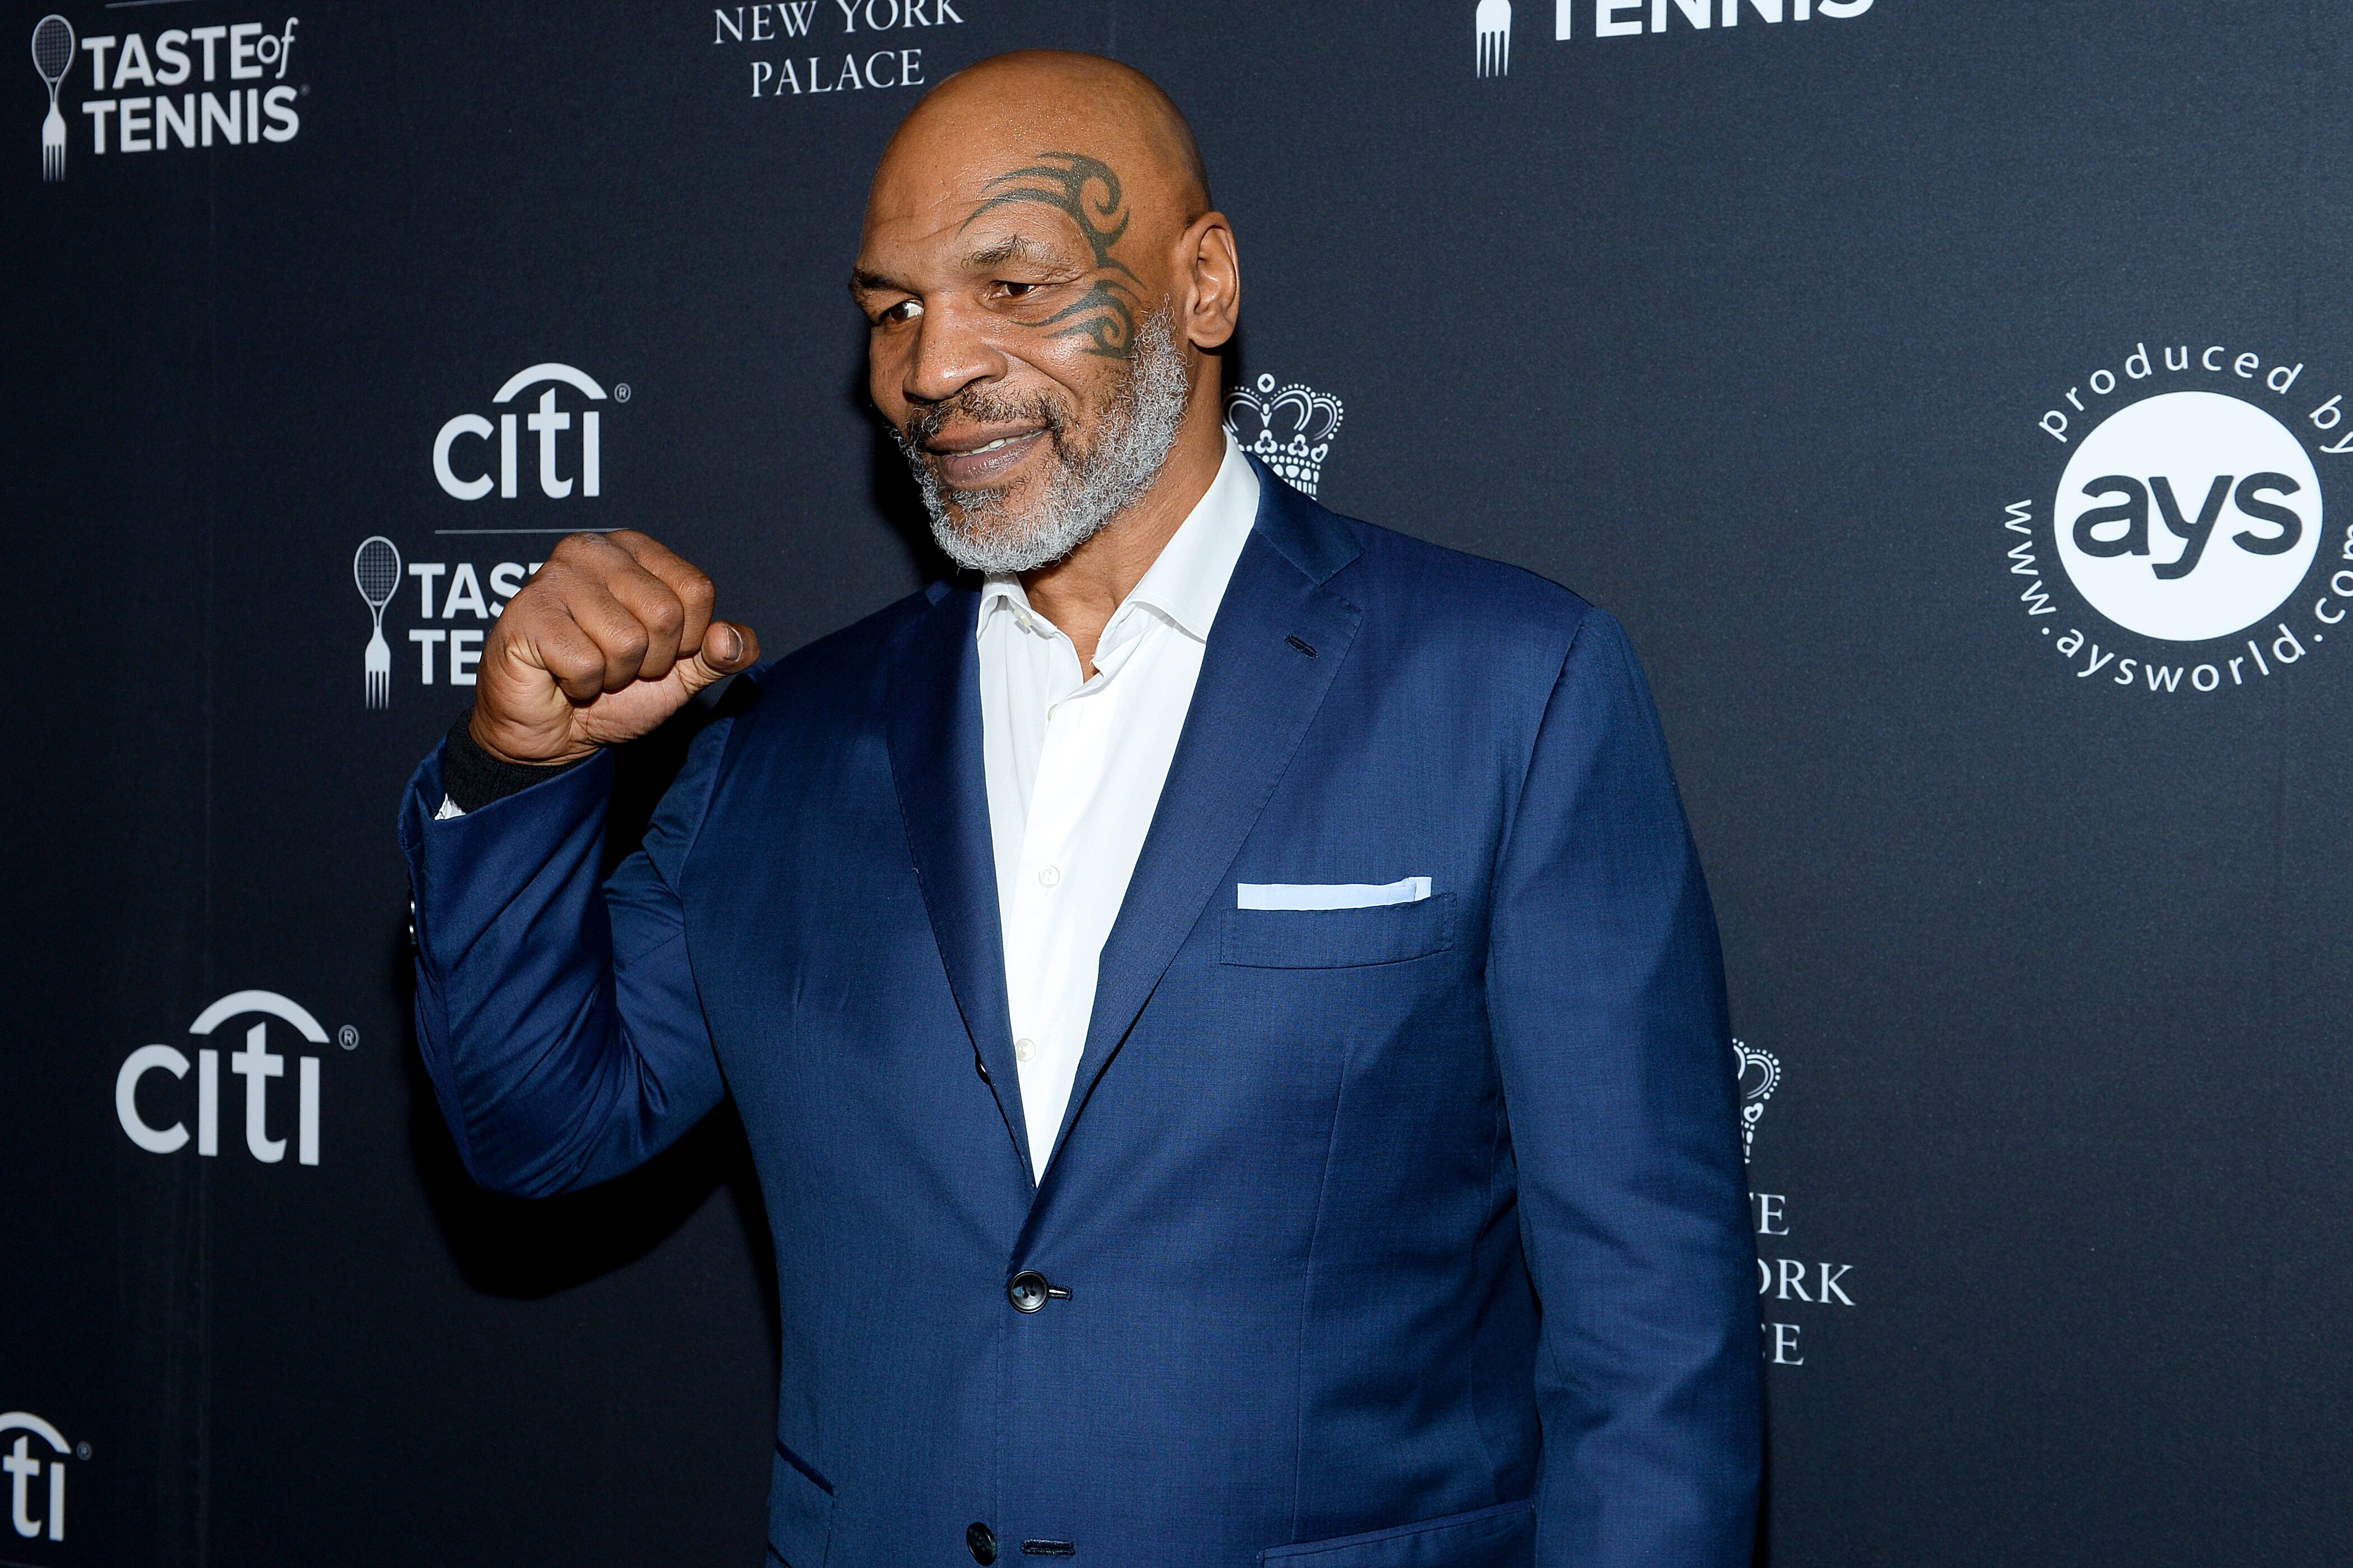 Mike Tyson attending the Citi Taste of Tennis in August 2019. | Photo: Getty Images